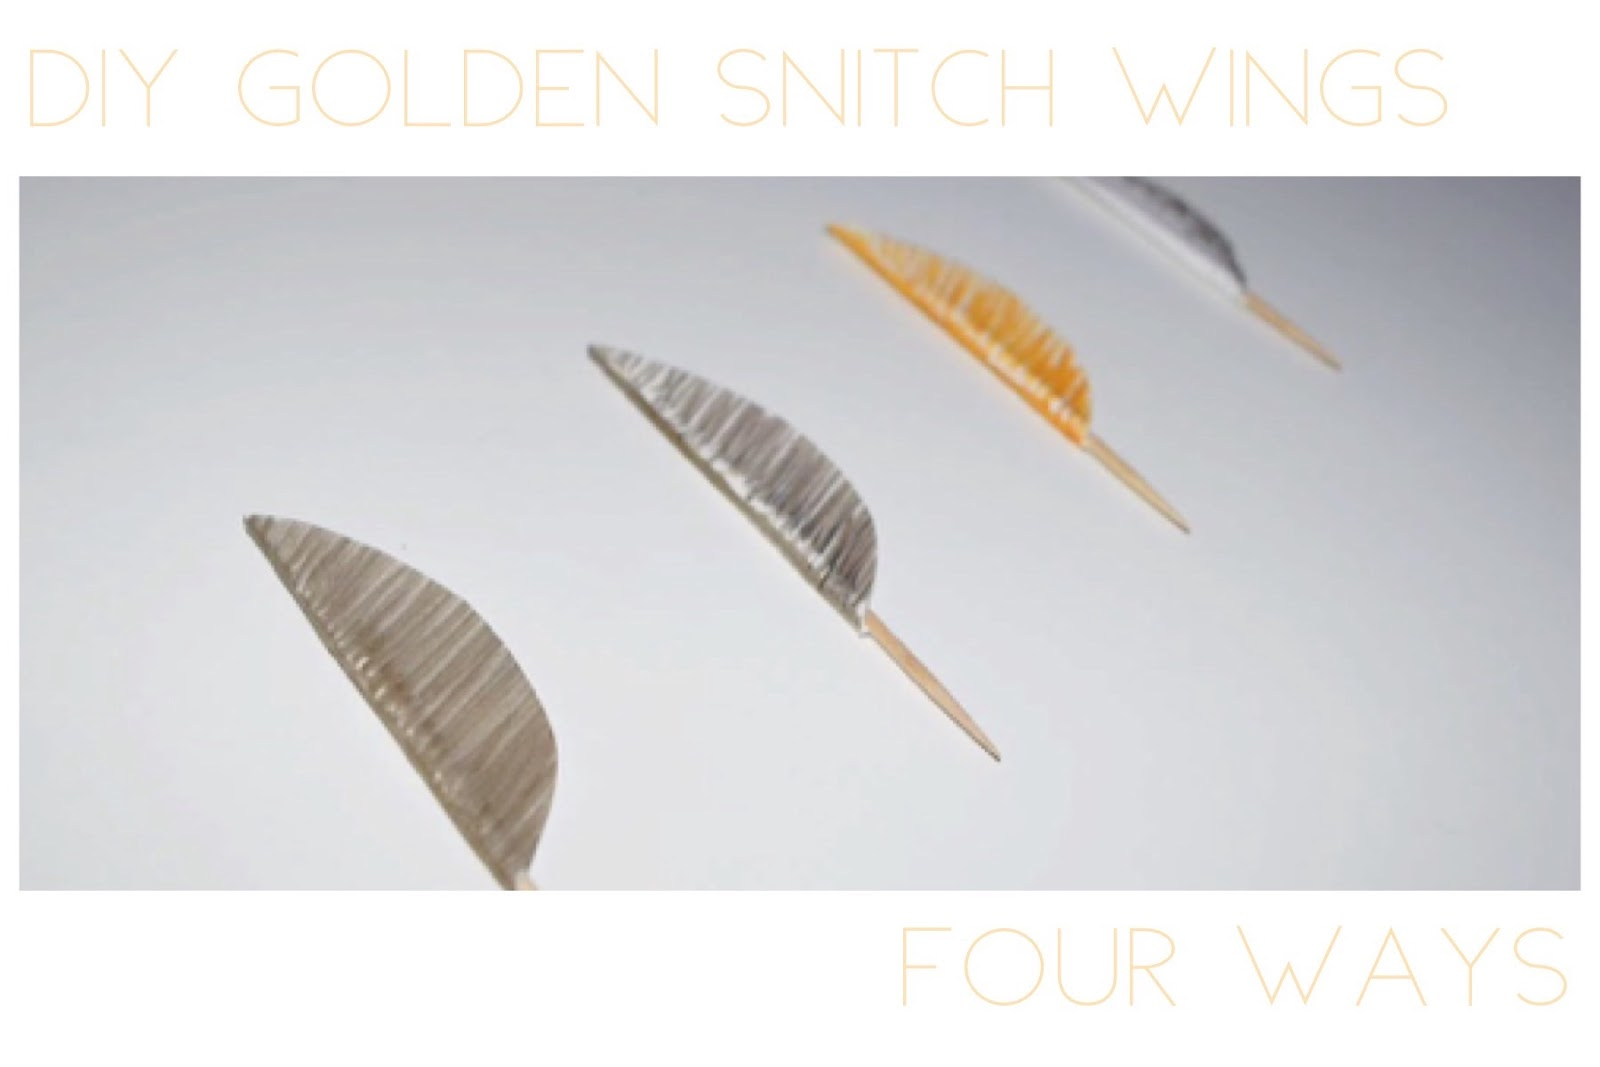 image regarding Golden Snitch Wings Printable identify Snitch Wings Very similar Key terms Strategies - Snitch Wings